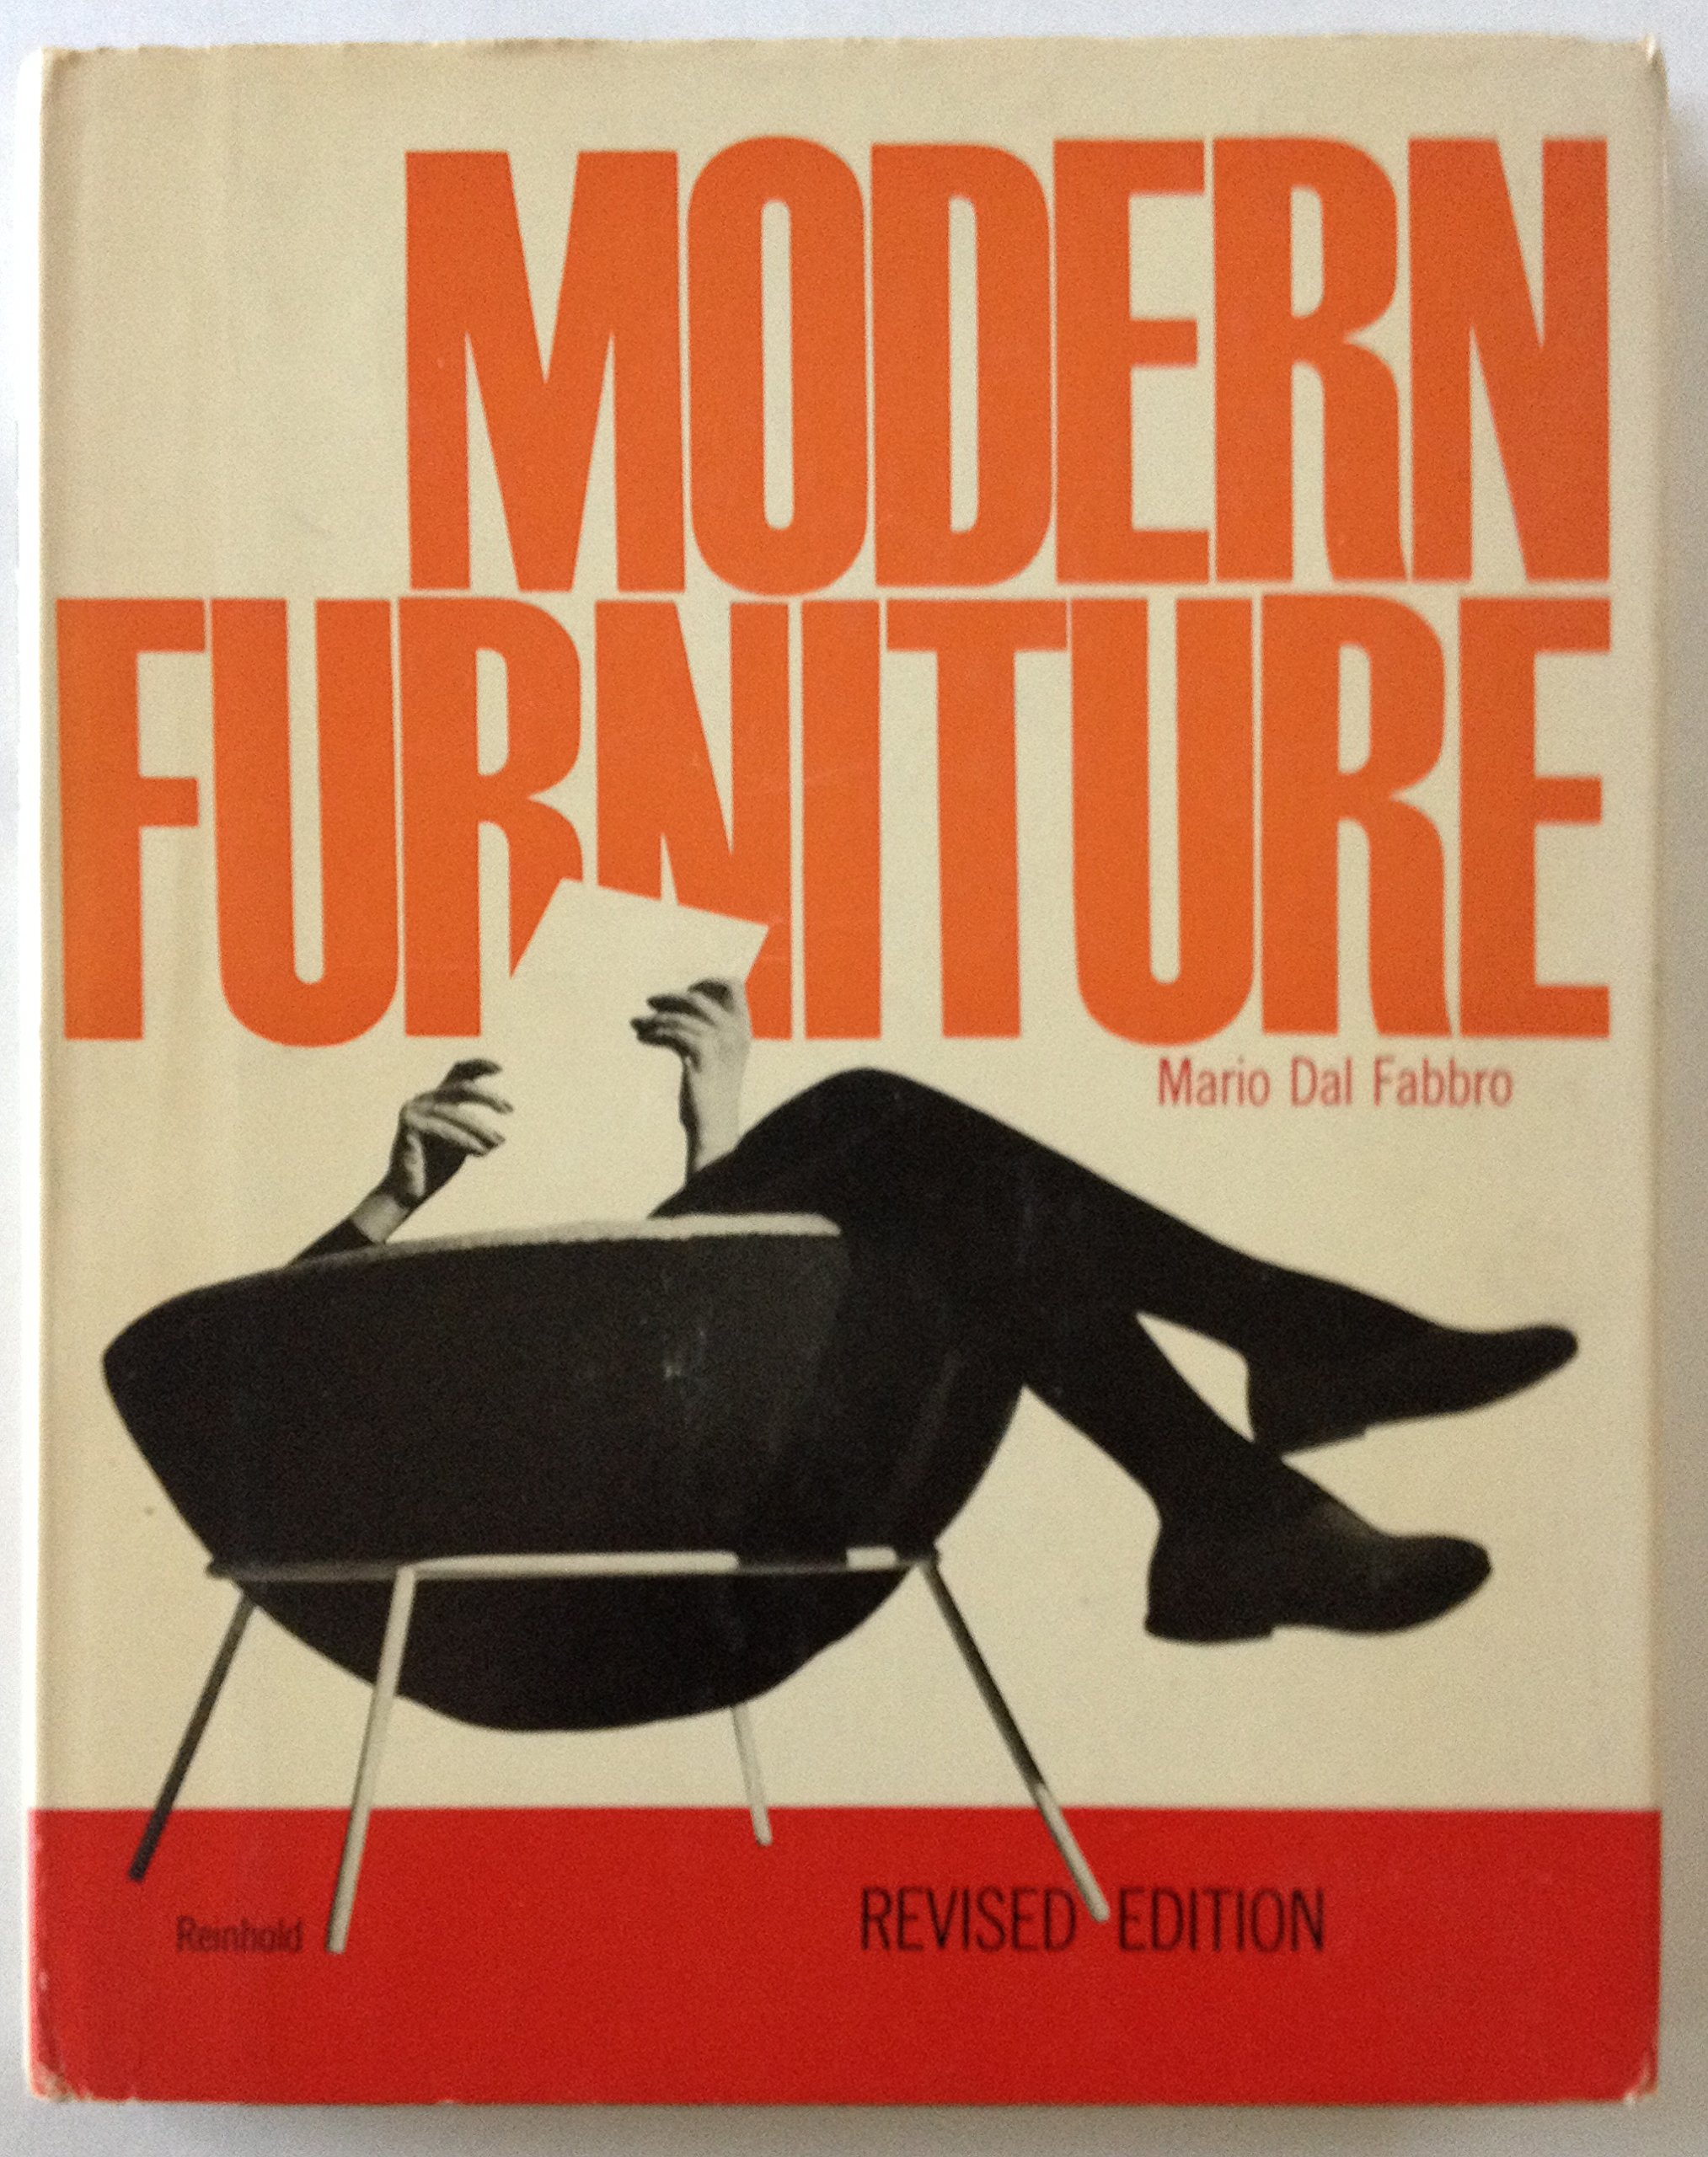 Modern furniture its design construction revised edition hardcover january 1 1958